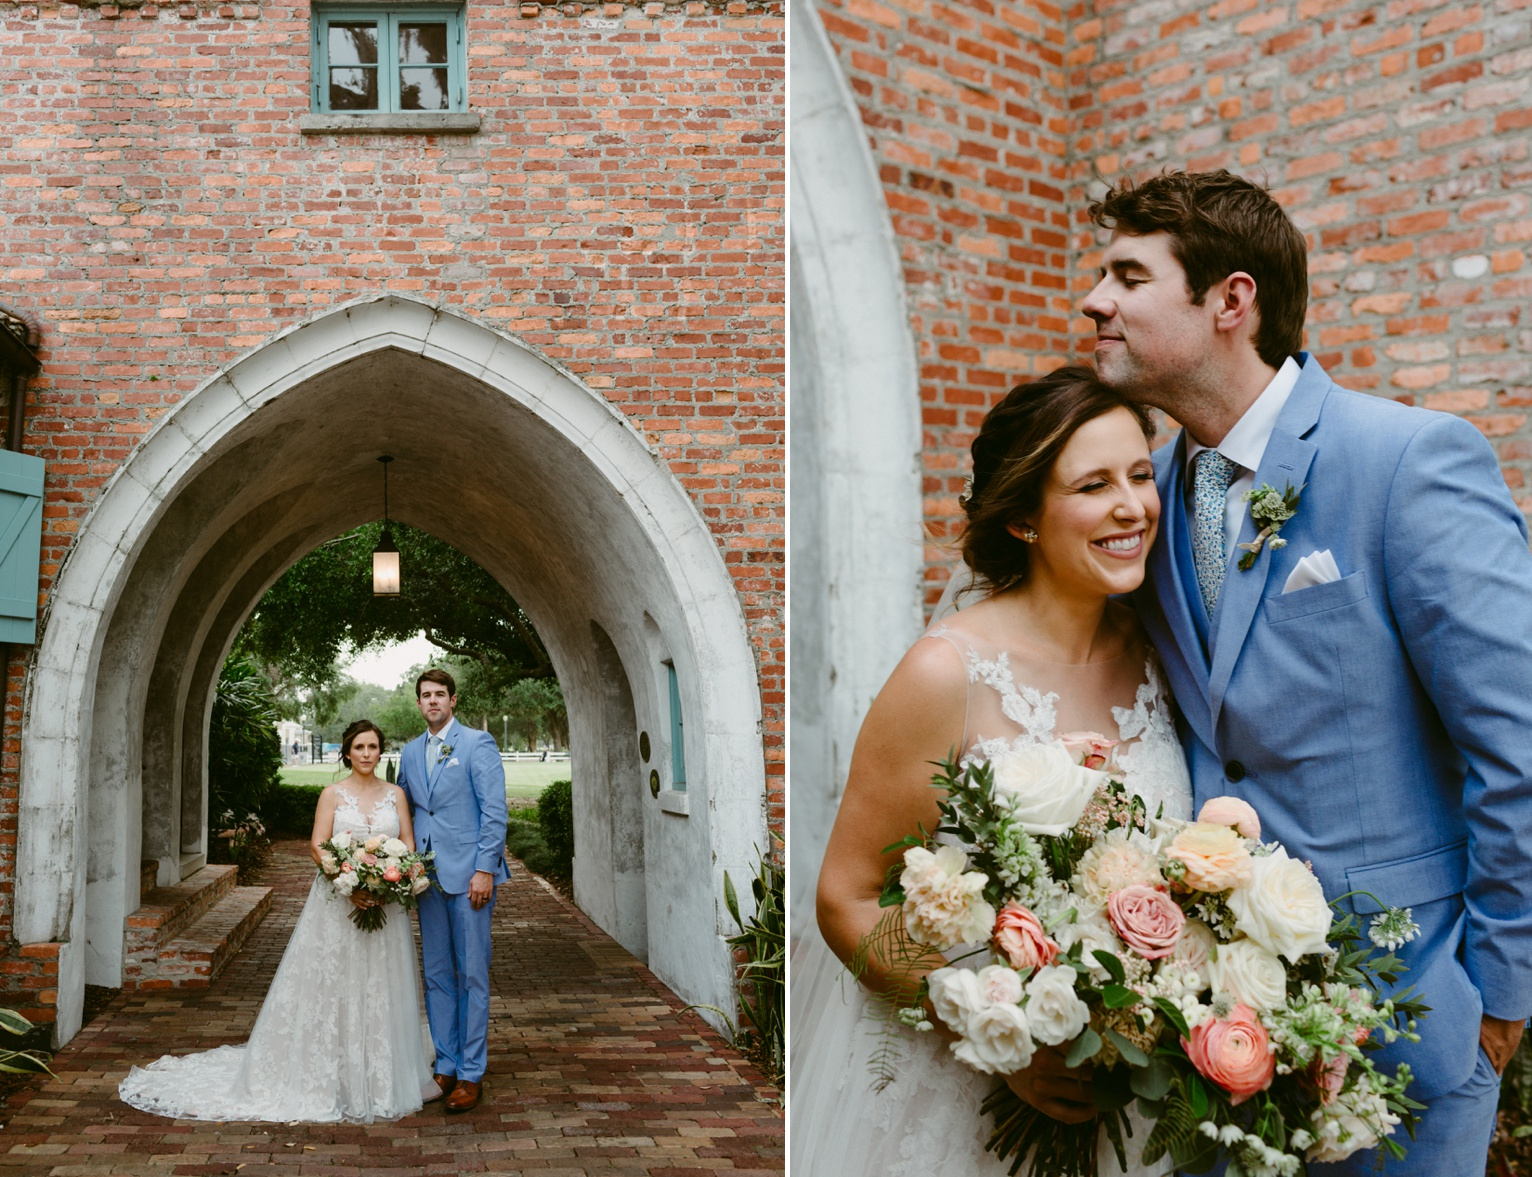 Dreamtownco.com_blog_Nick&Lindsay_Wedding_0099.jpg